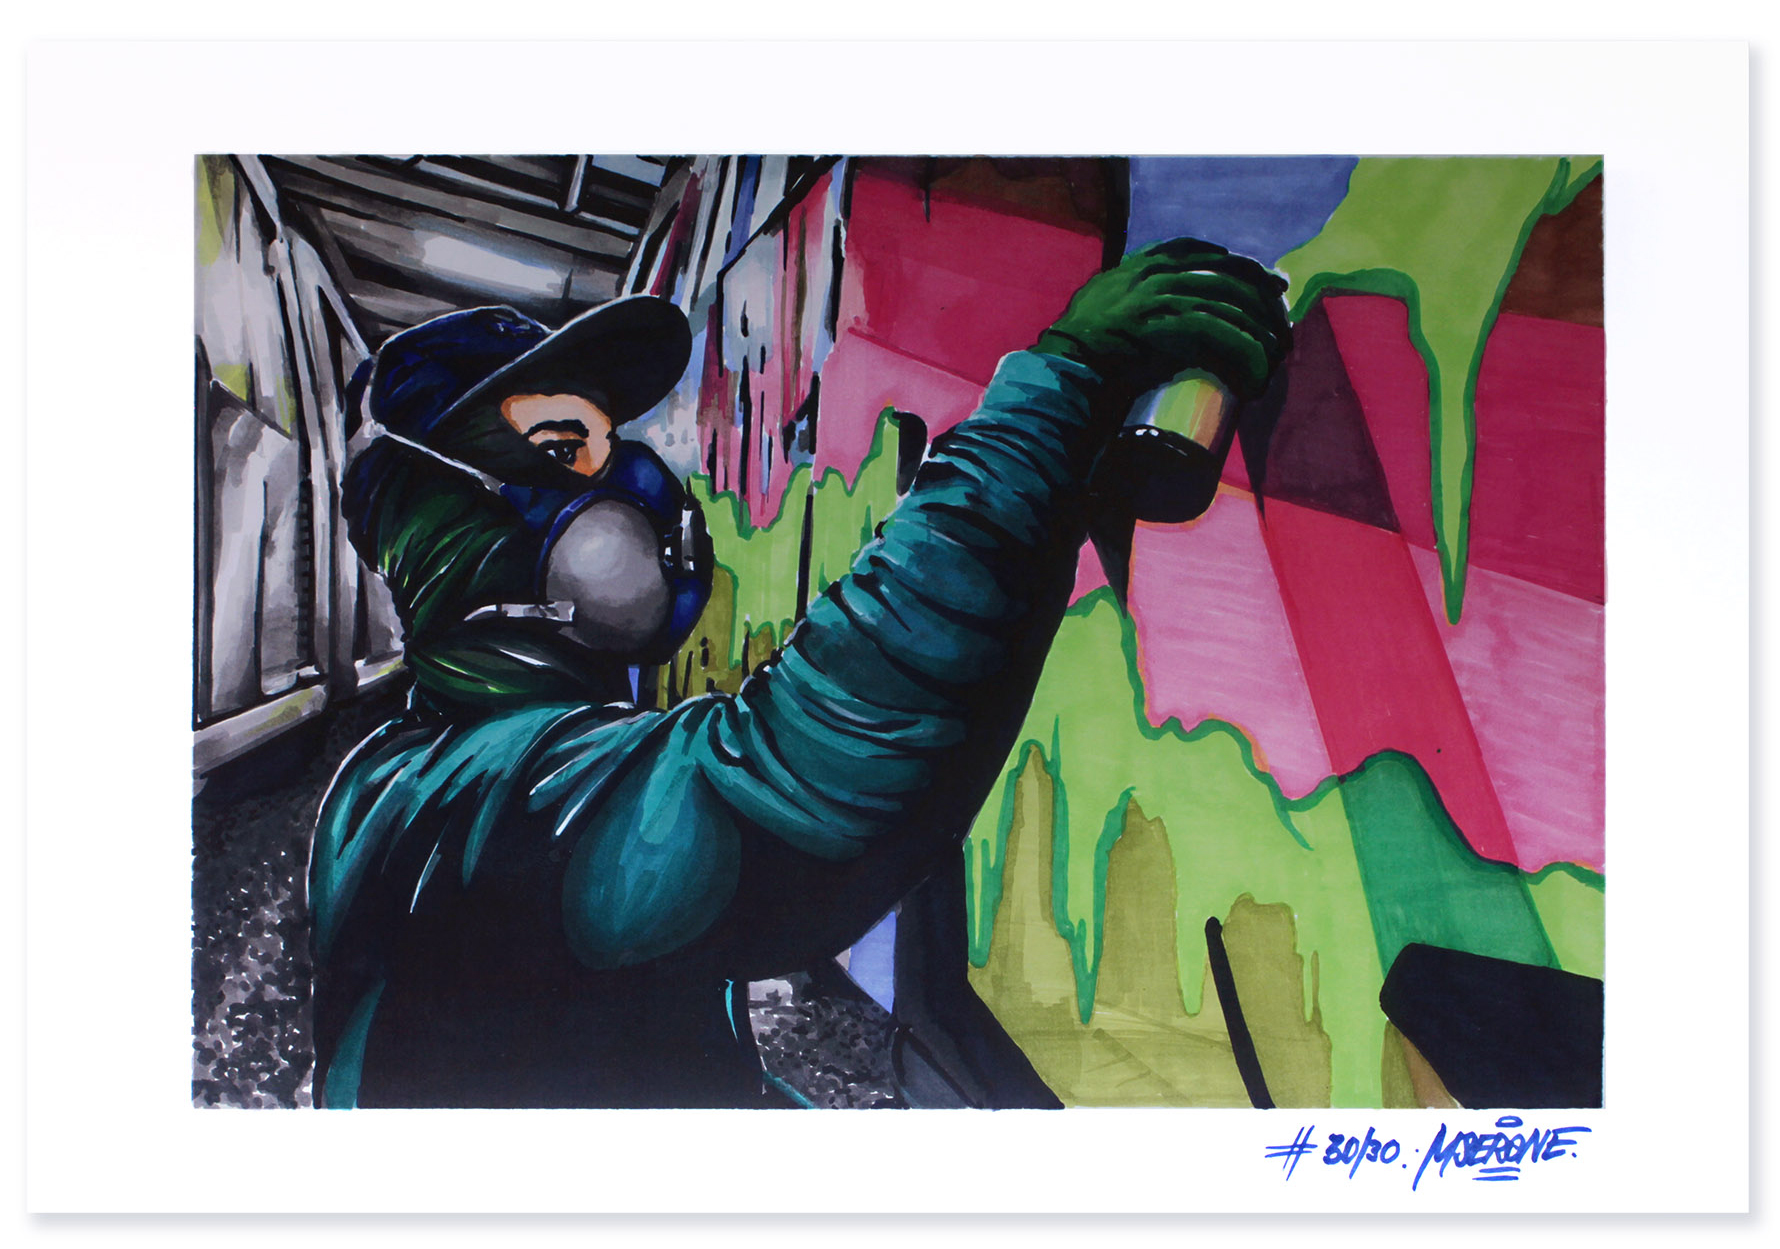 Nesk - poster, digital print signed by Mser